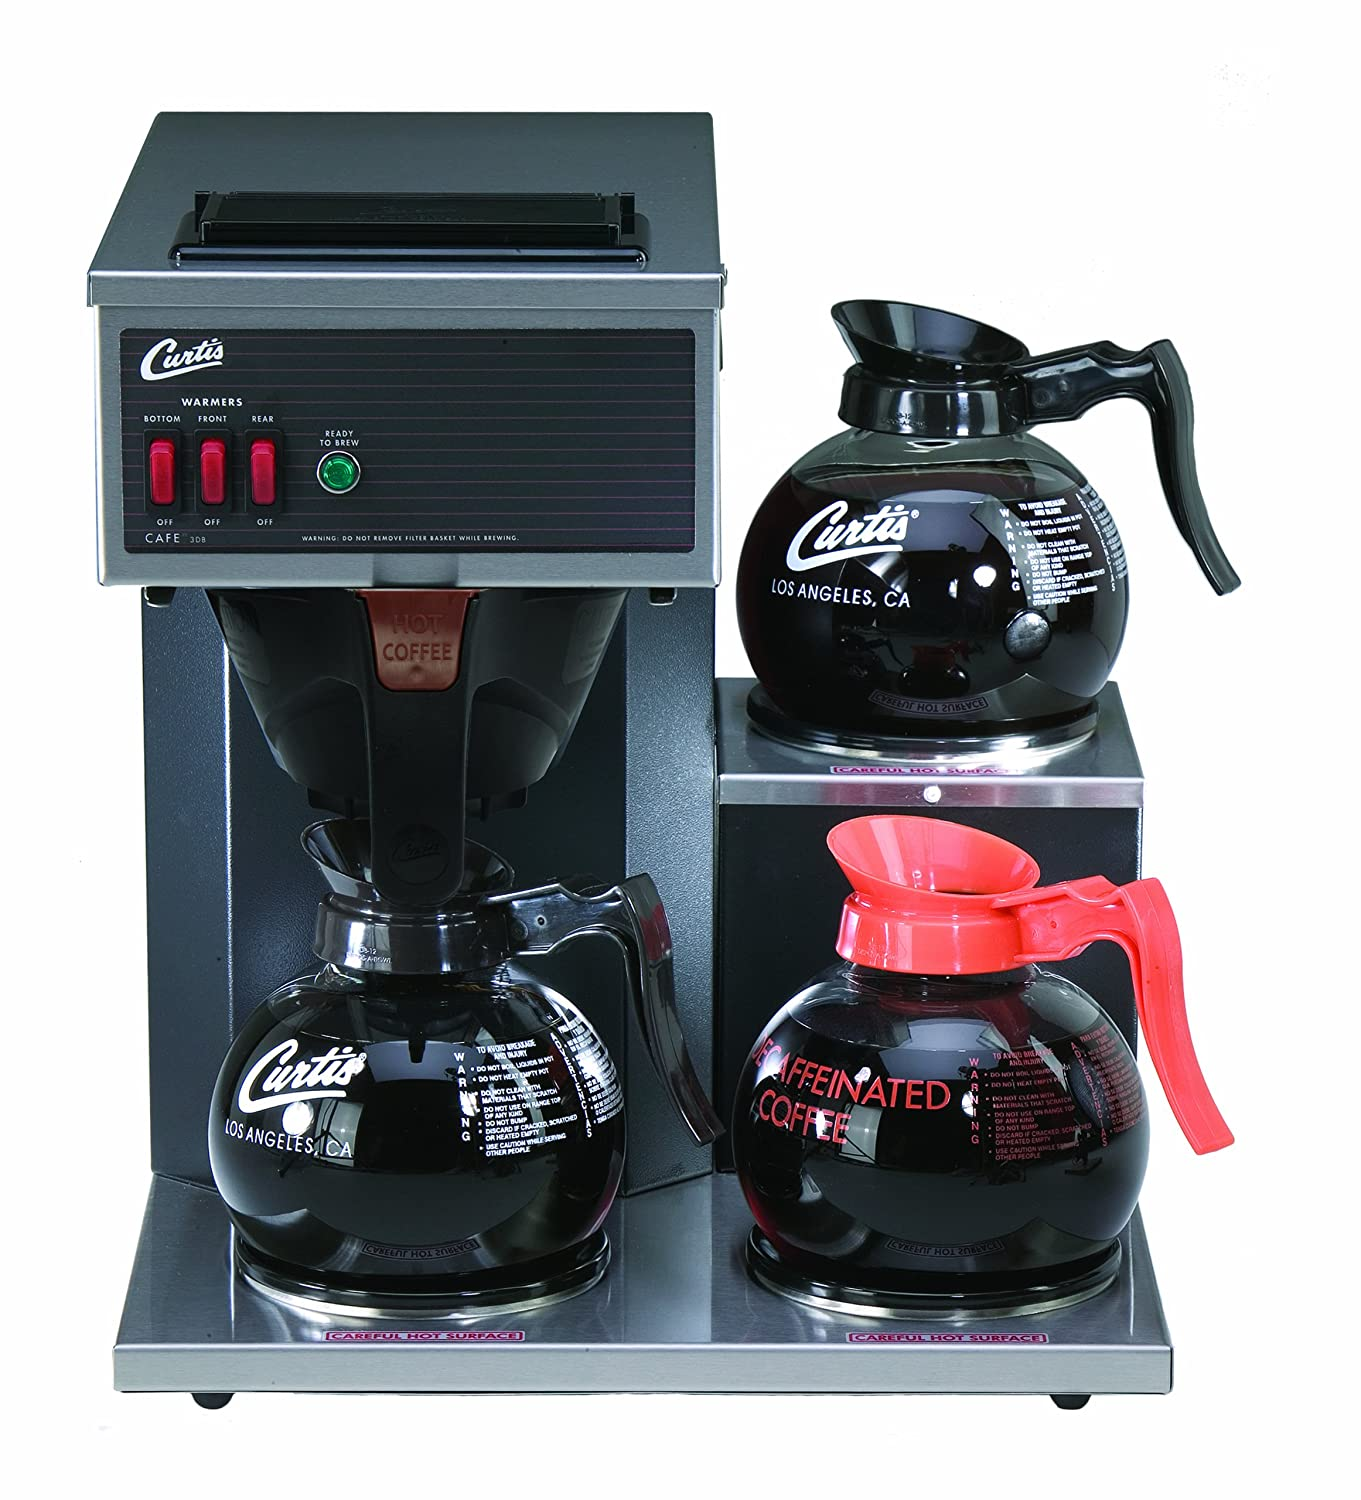 Wilbur Curtis Commercial Pourover Coffee Brewer 64 Oz Coffee Brewer, 3 Station, 2 Lower, 1 Upper Warmer - Coffee Maker with Fast-Brewing System - CAFE3DB10A000 (Each)